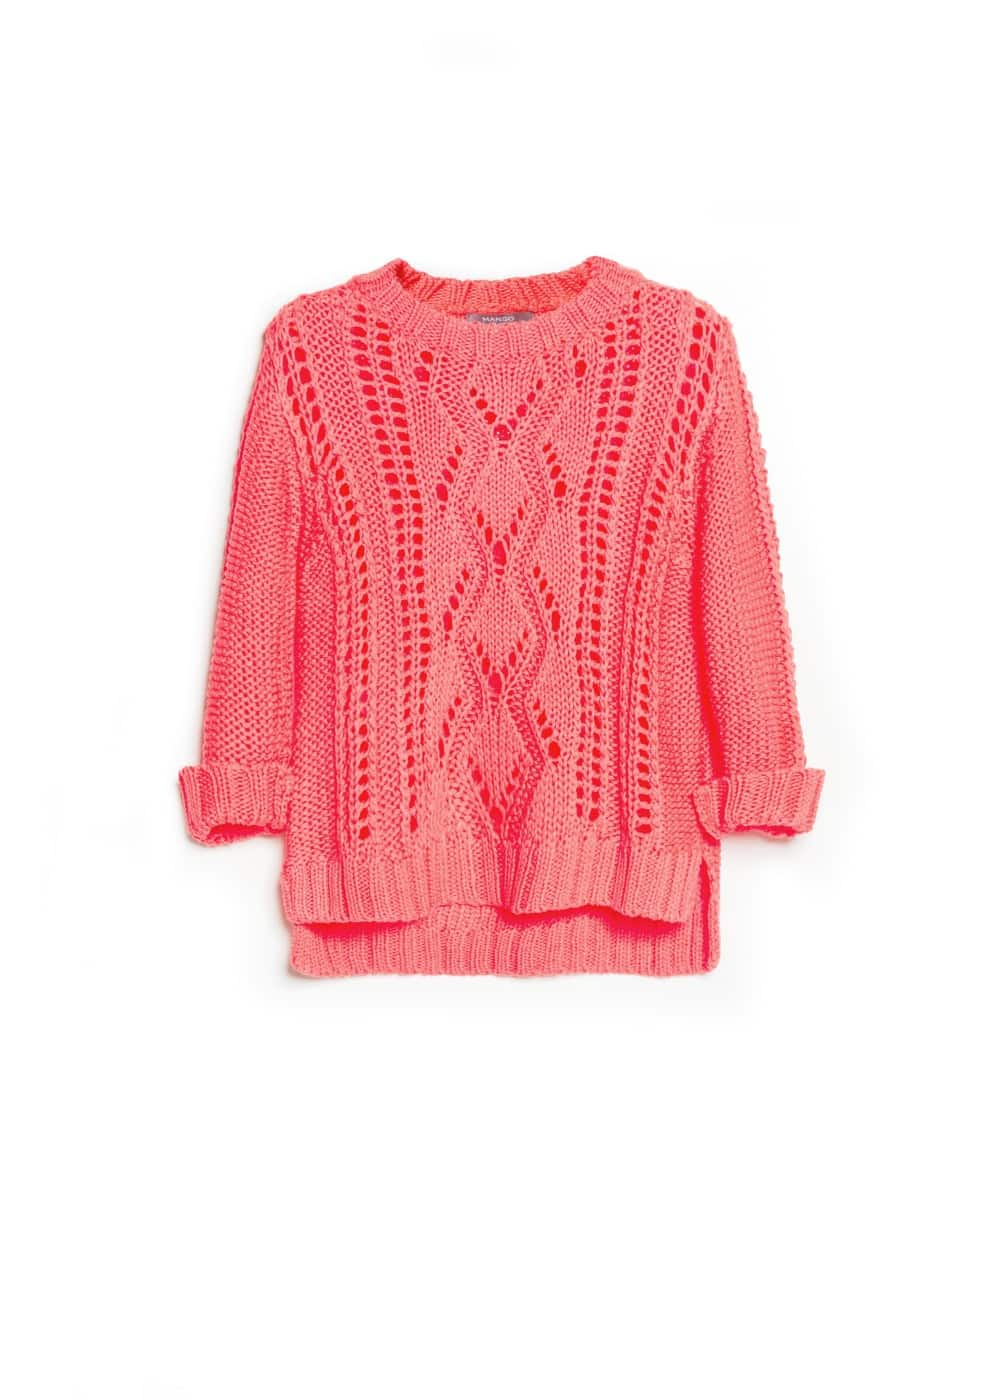 Openwork detail sweater